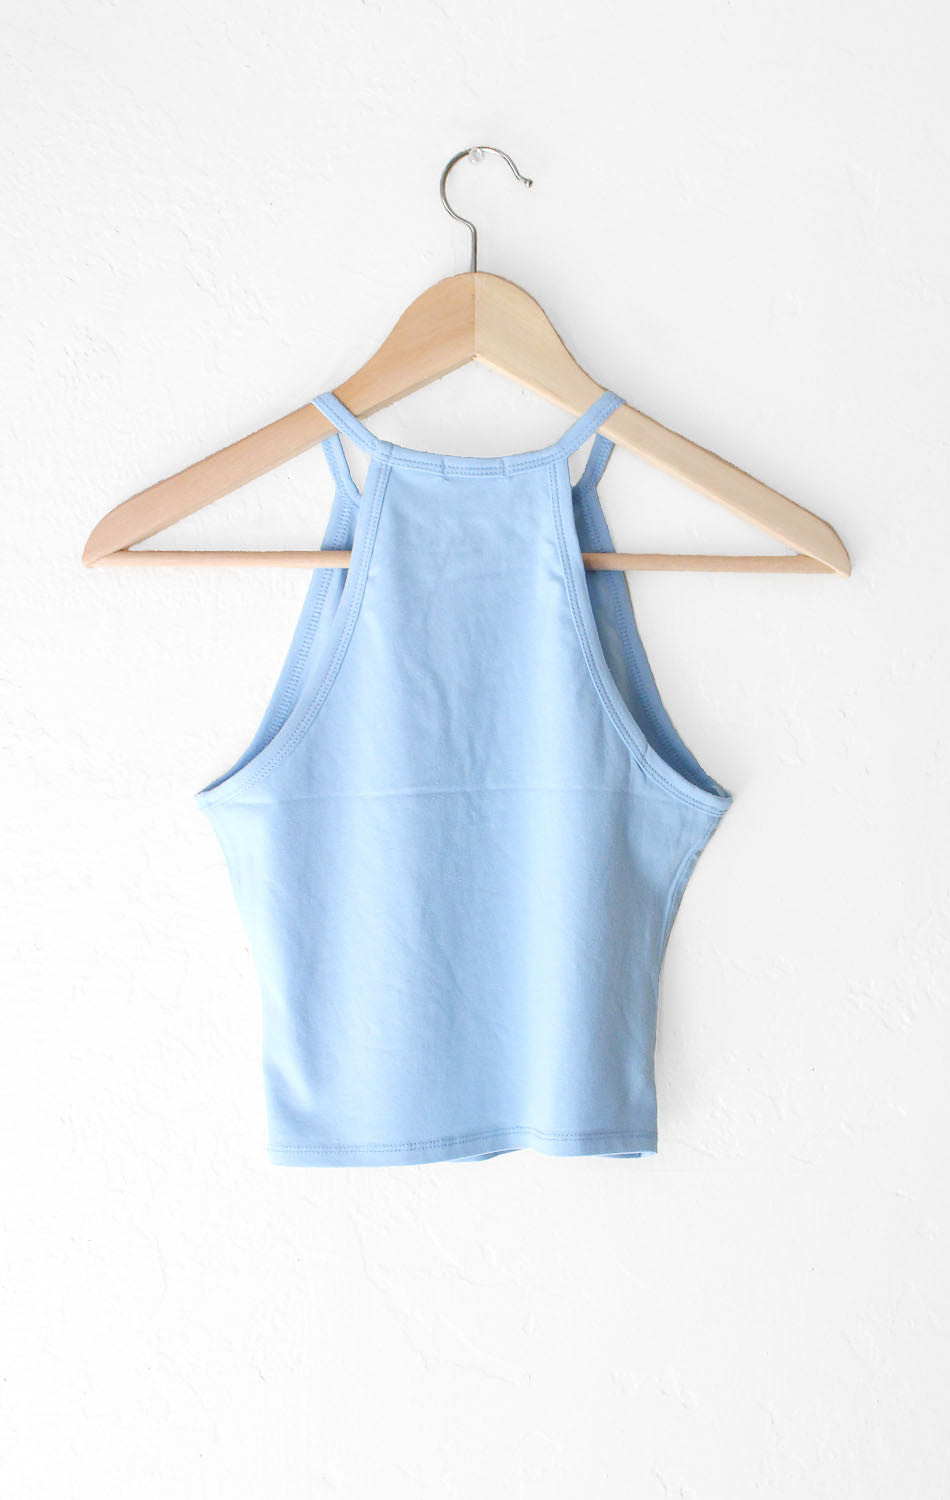 NYCT Clothing Sleeveless Crop Top - Light Blue